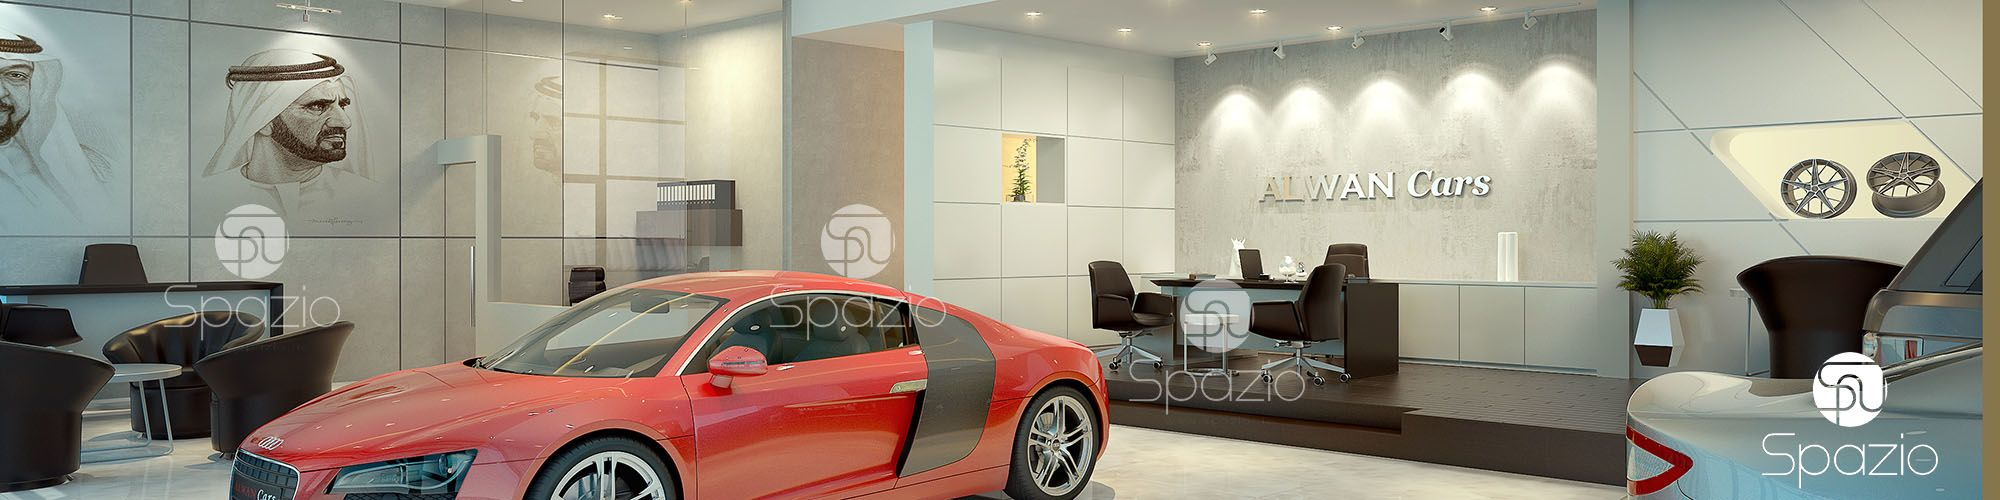 automotive dealership design